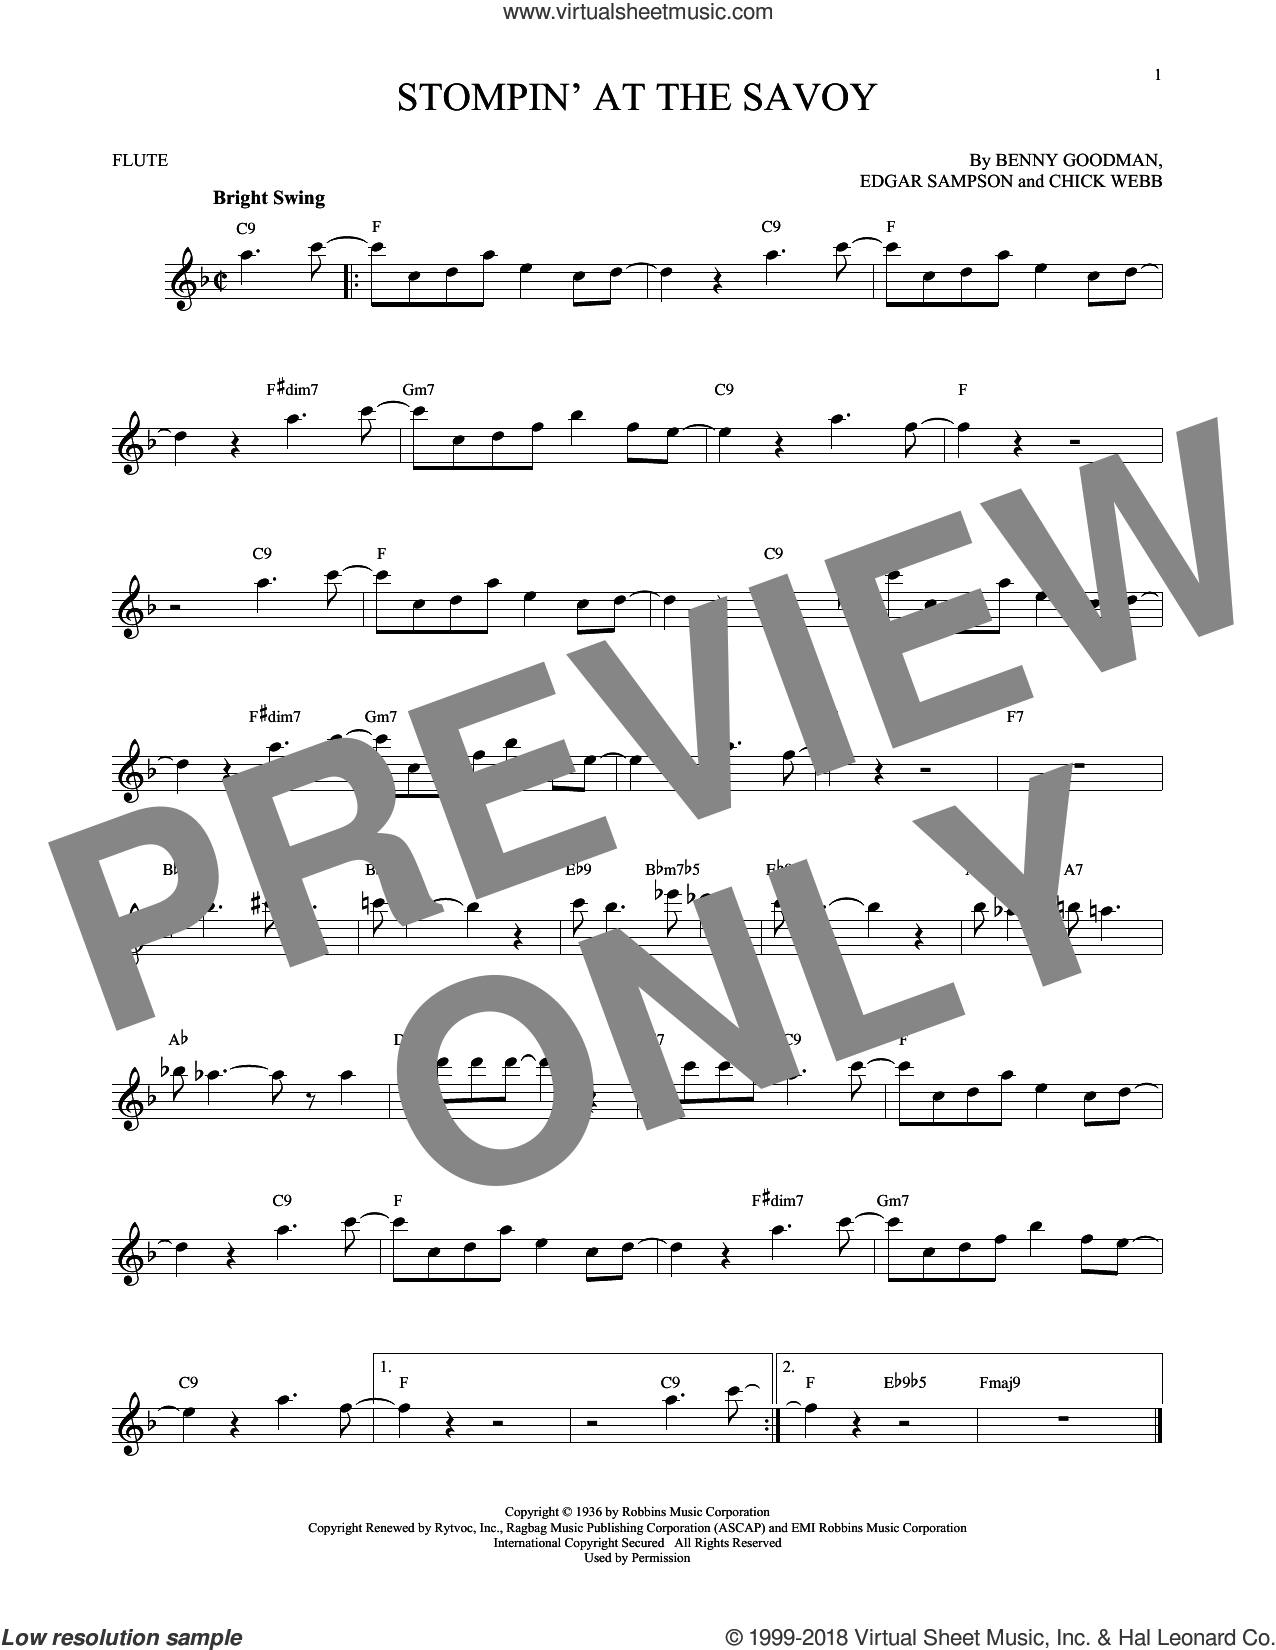 Stompin' At The Savoy sheet music for flute solo by Benny Goodman, Andy Razaf, Chick Webb and Edgar Sampson, intermediate skill level